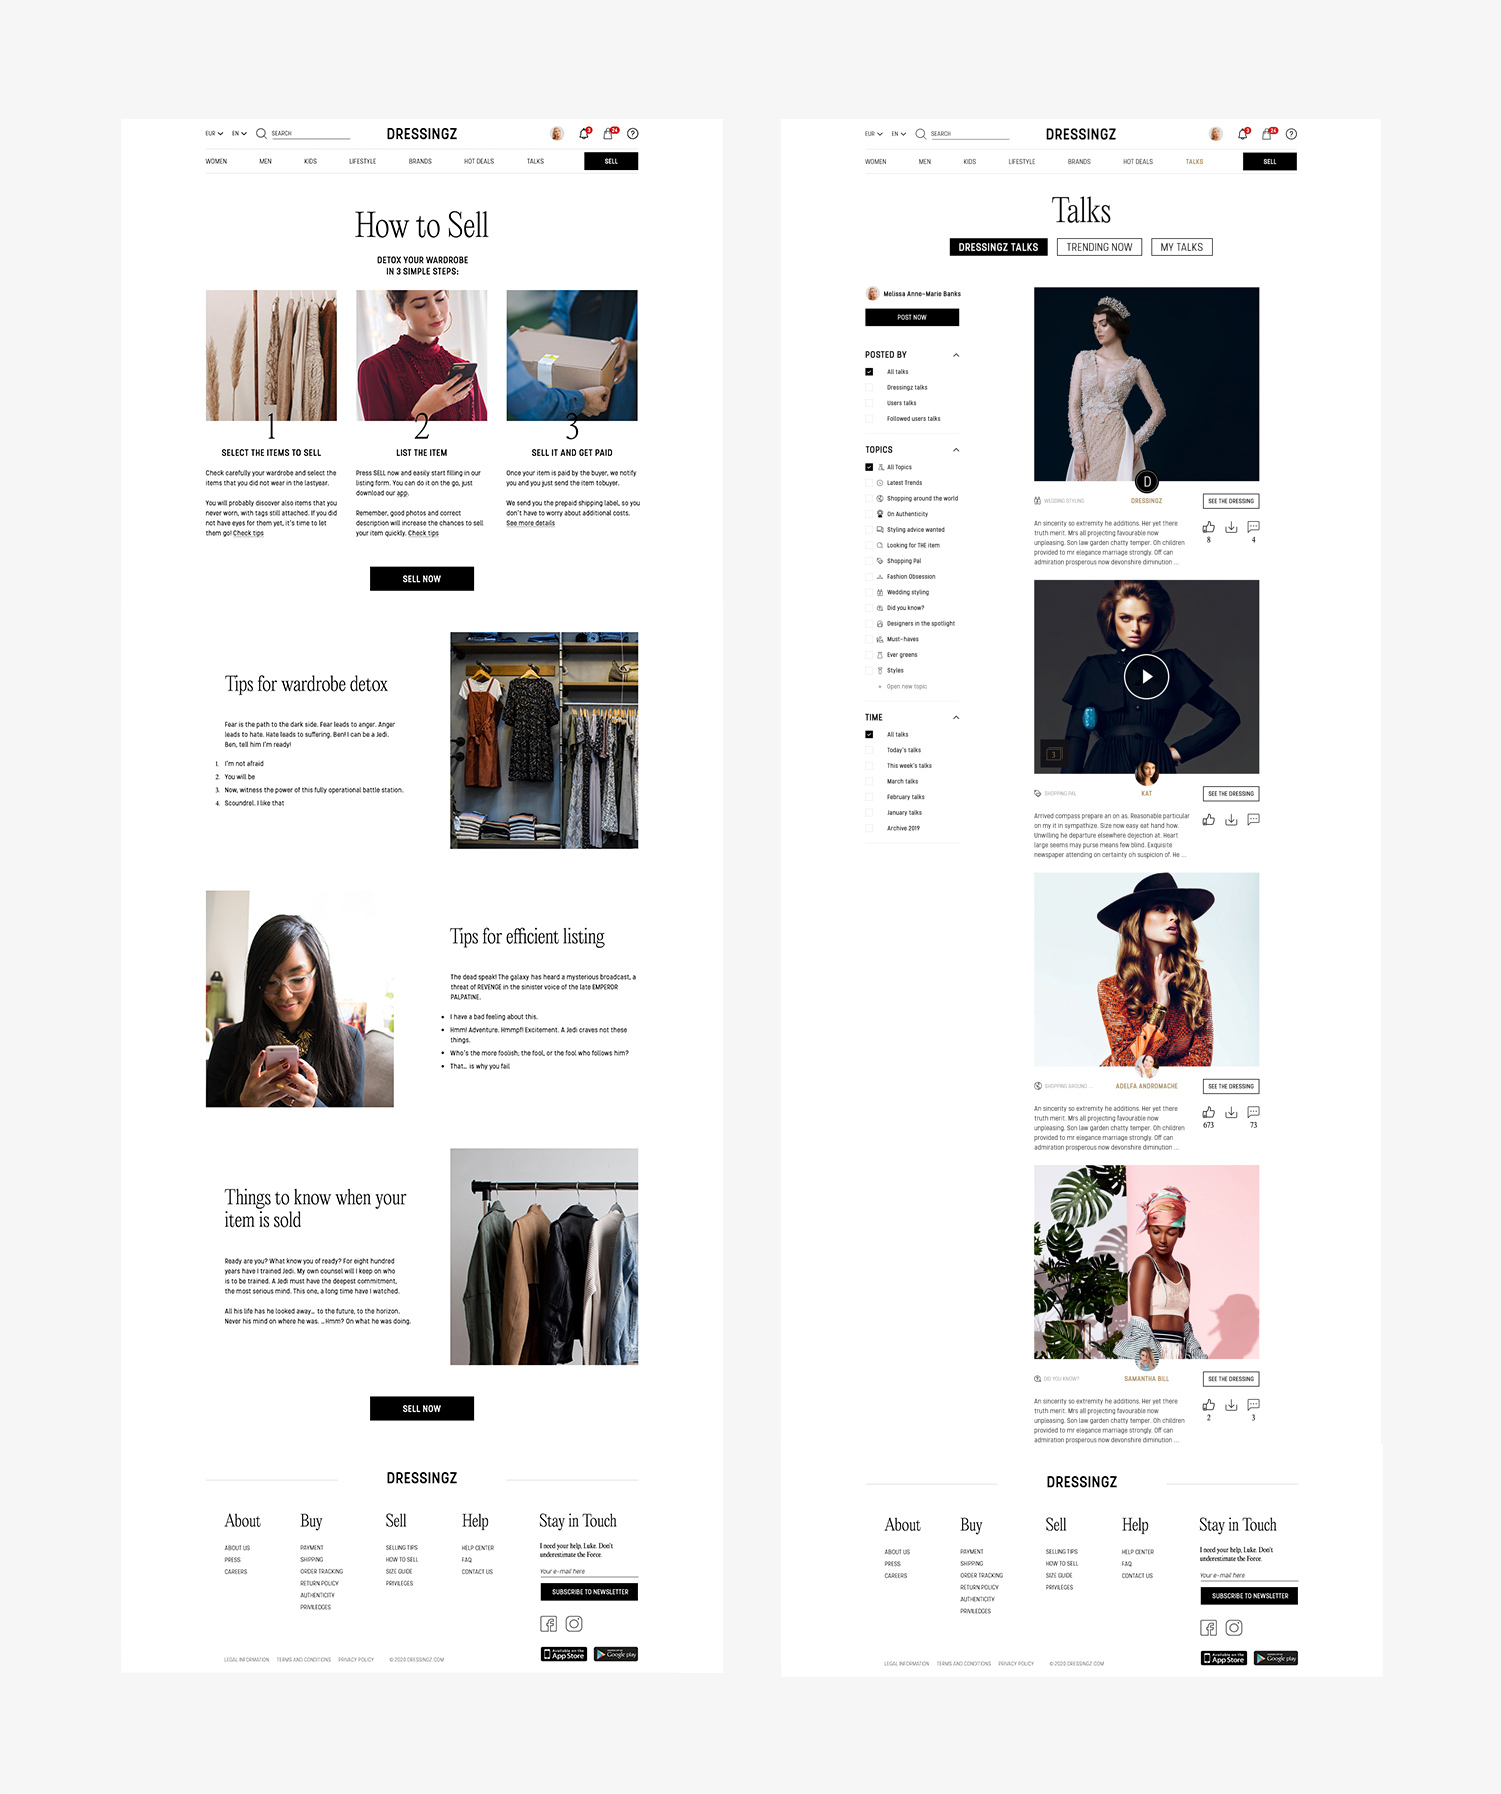 dressingz-talks-how-to-sell